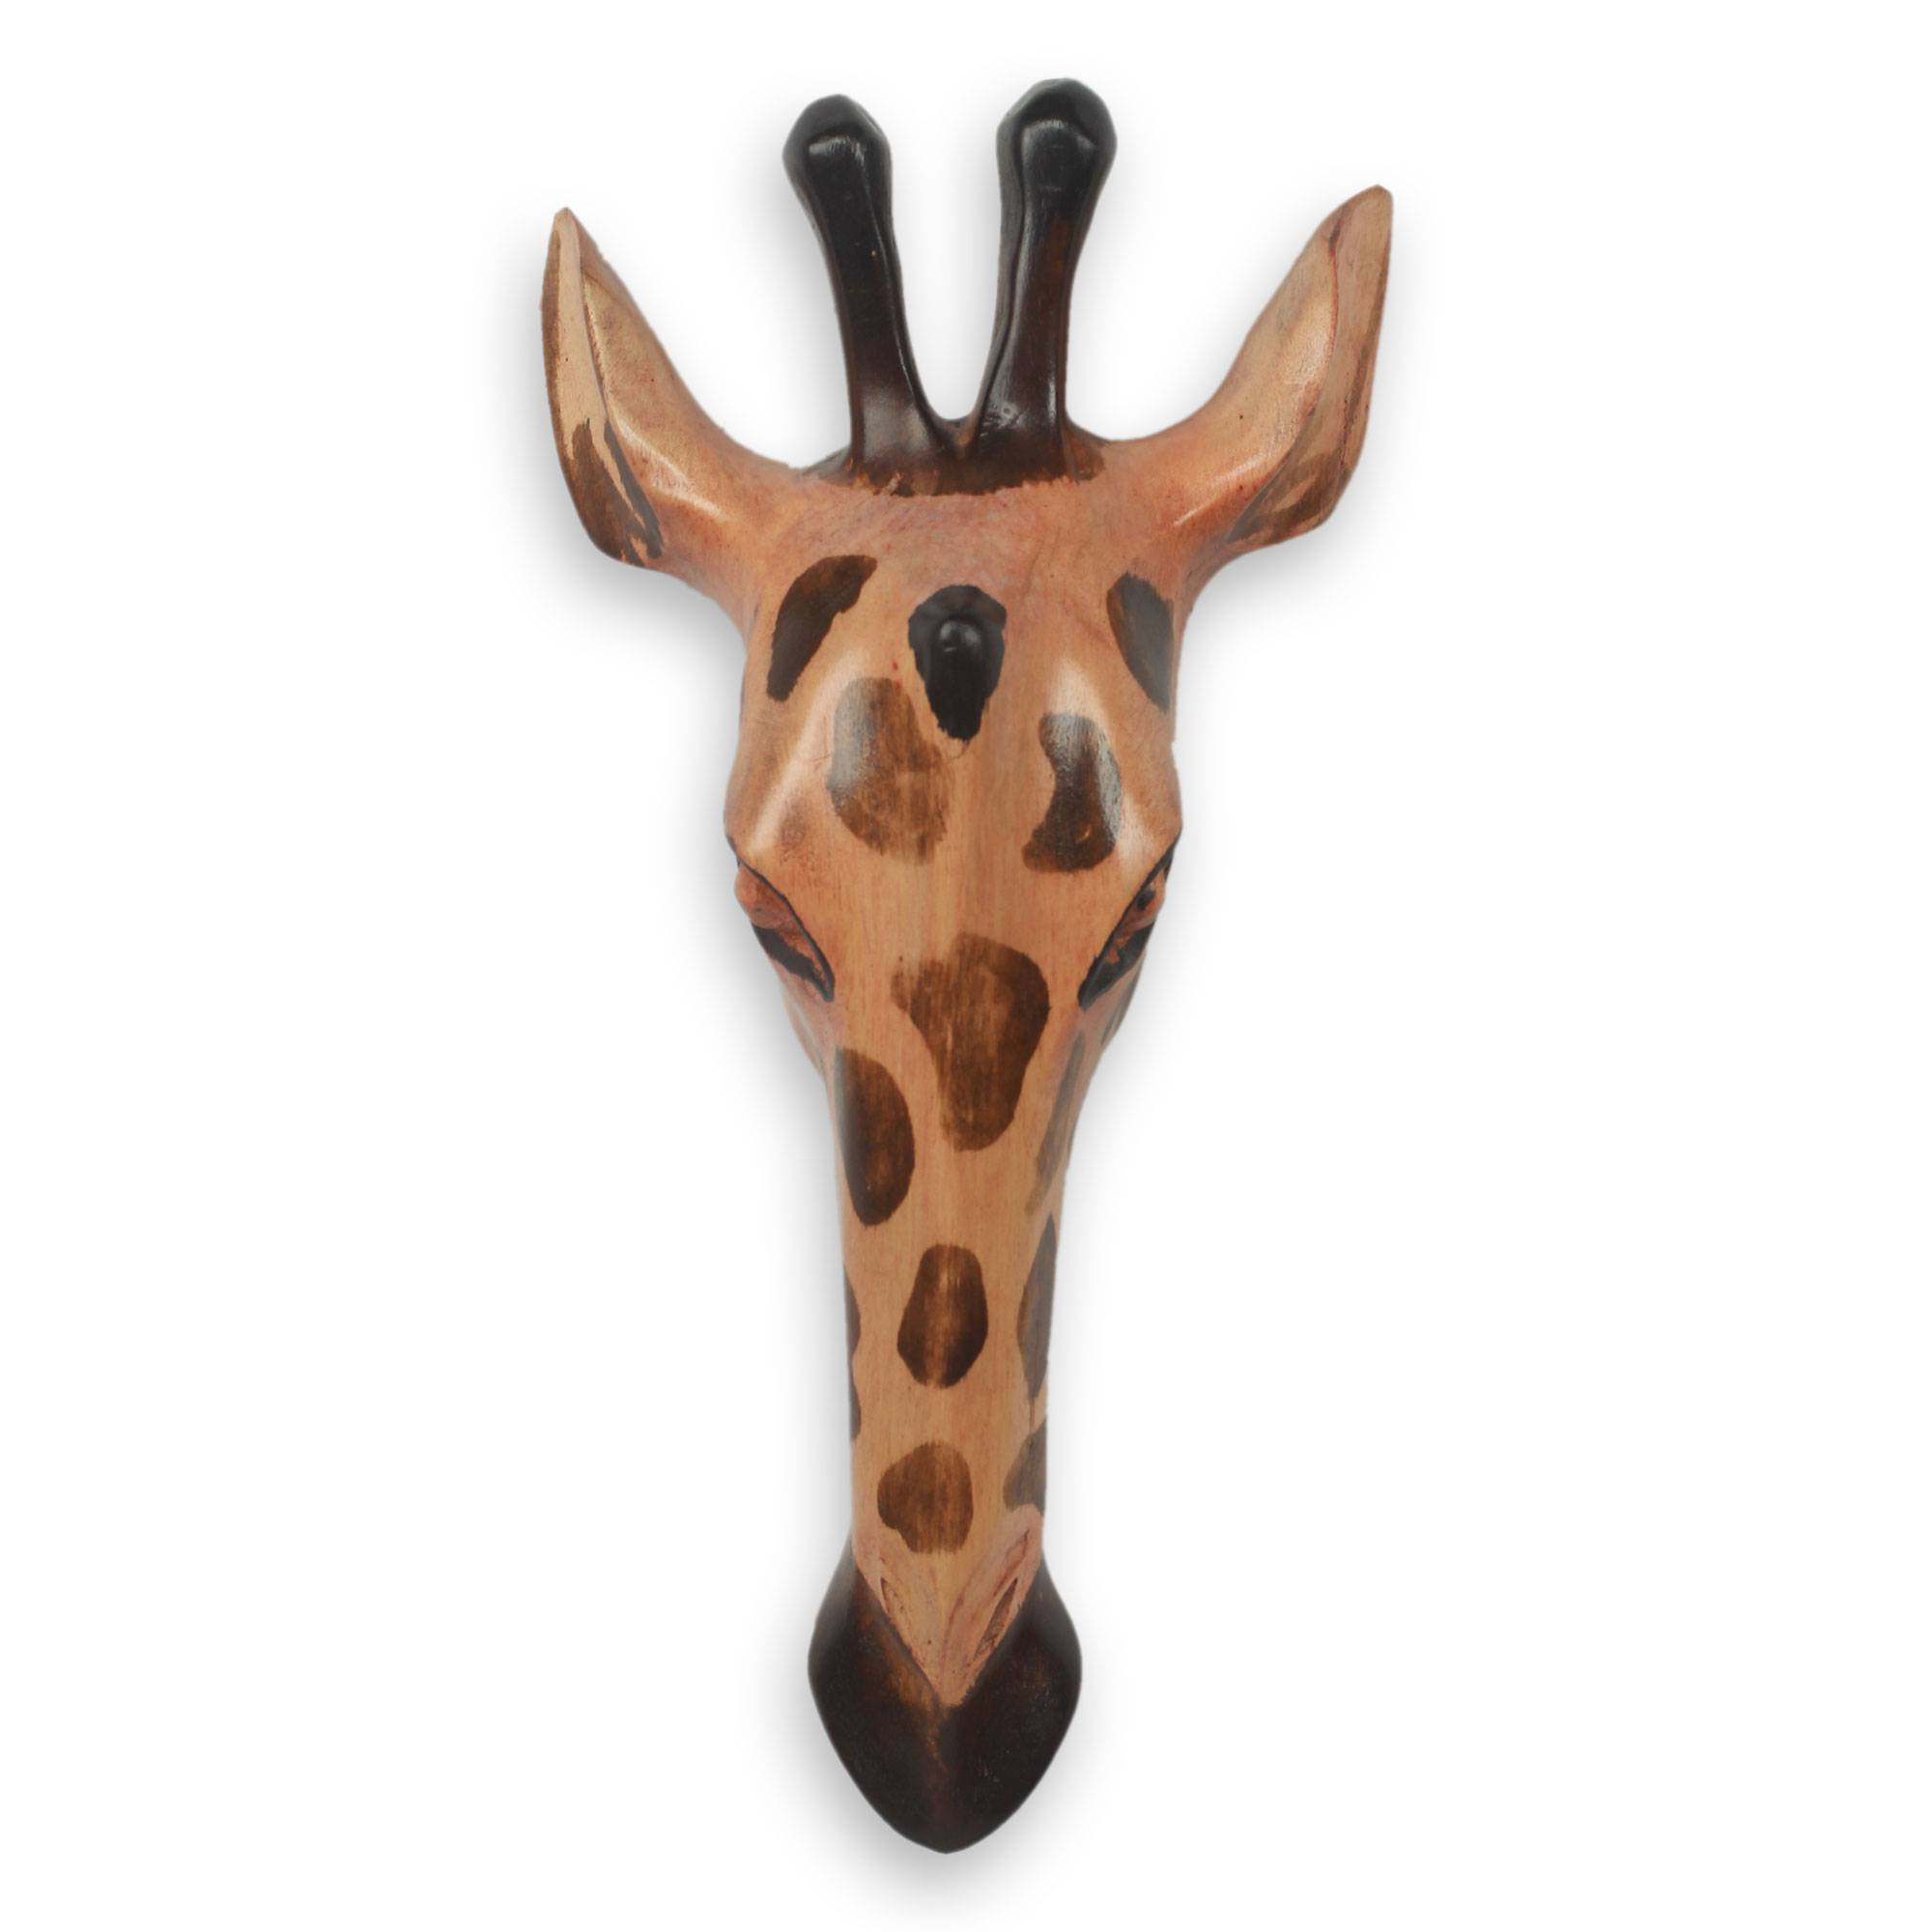 Unicef Uk Market Fair Trade African Wood Wall Mask Carved By Hand In Ghana Noble Giraffe